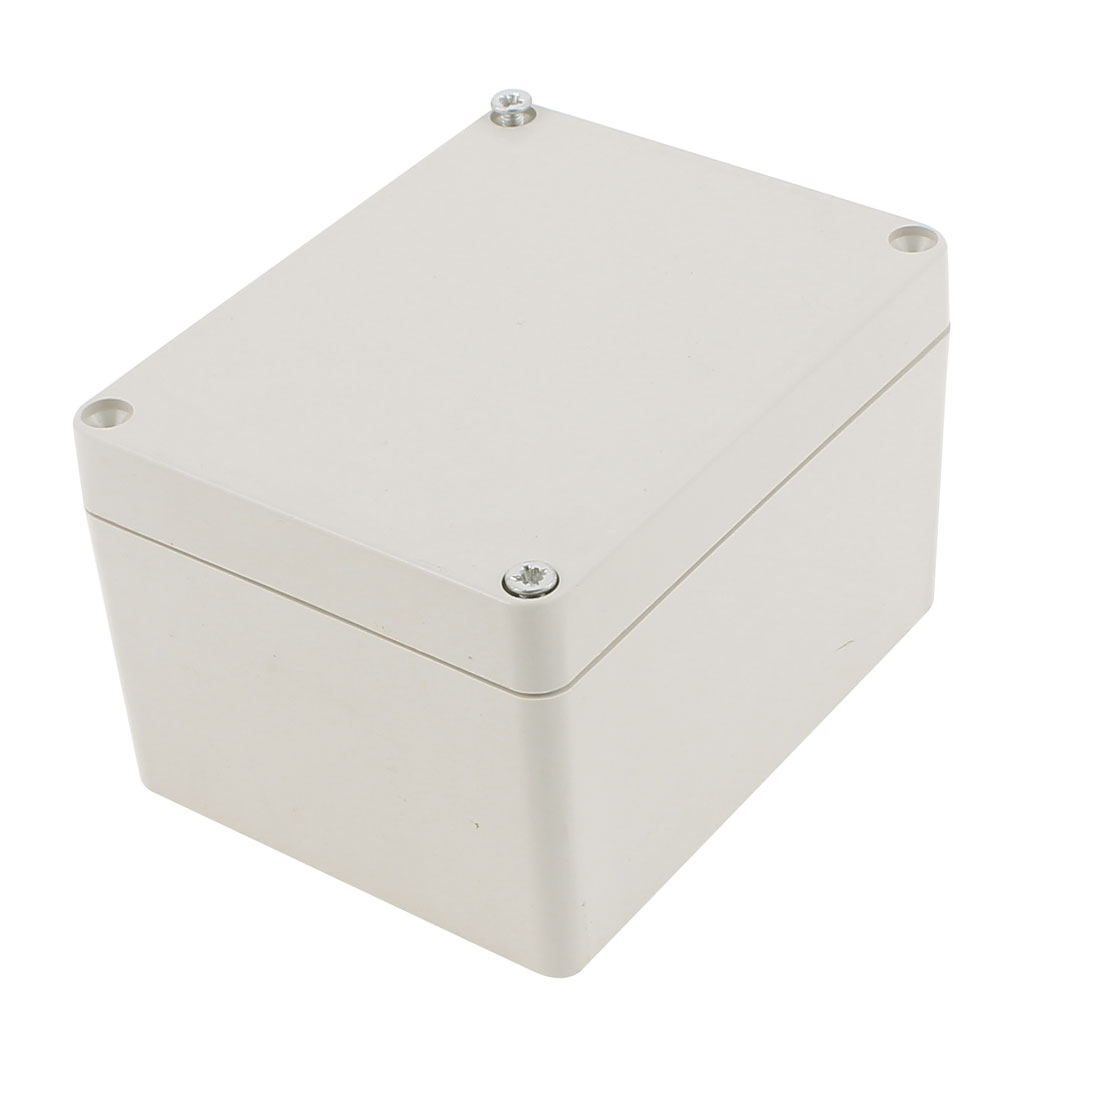 115 x 90 x 72mm Dustproof IP65 Junction Box Terminal Connecting Box Enclosure